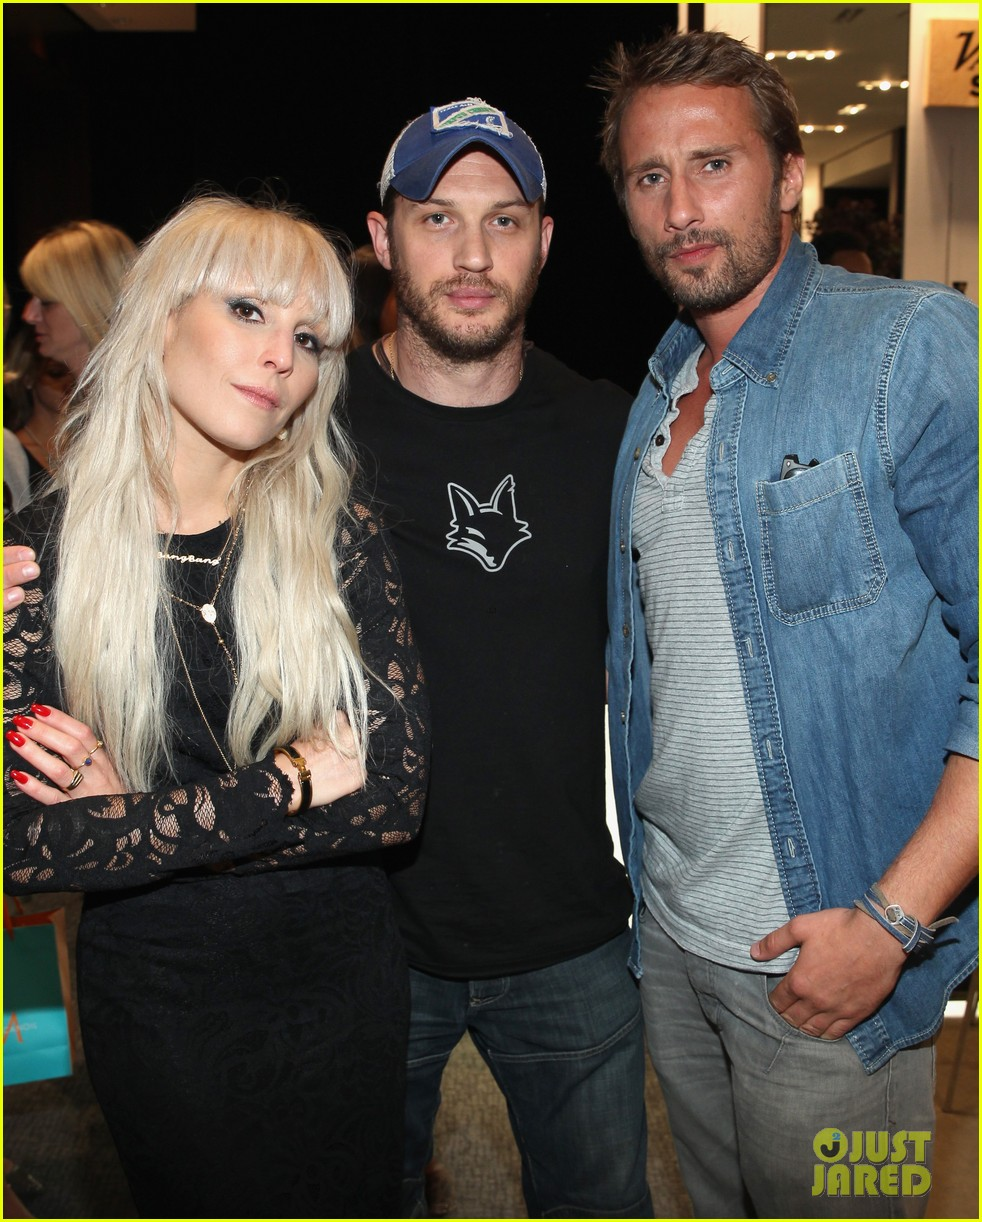 Photo of Noomi Rapace & her friend  Tom Hardy